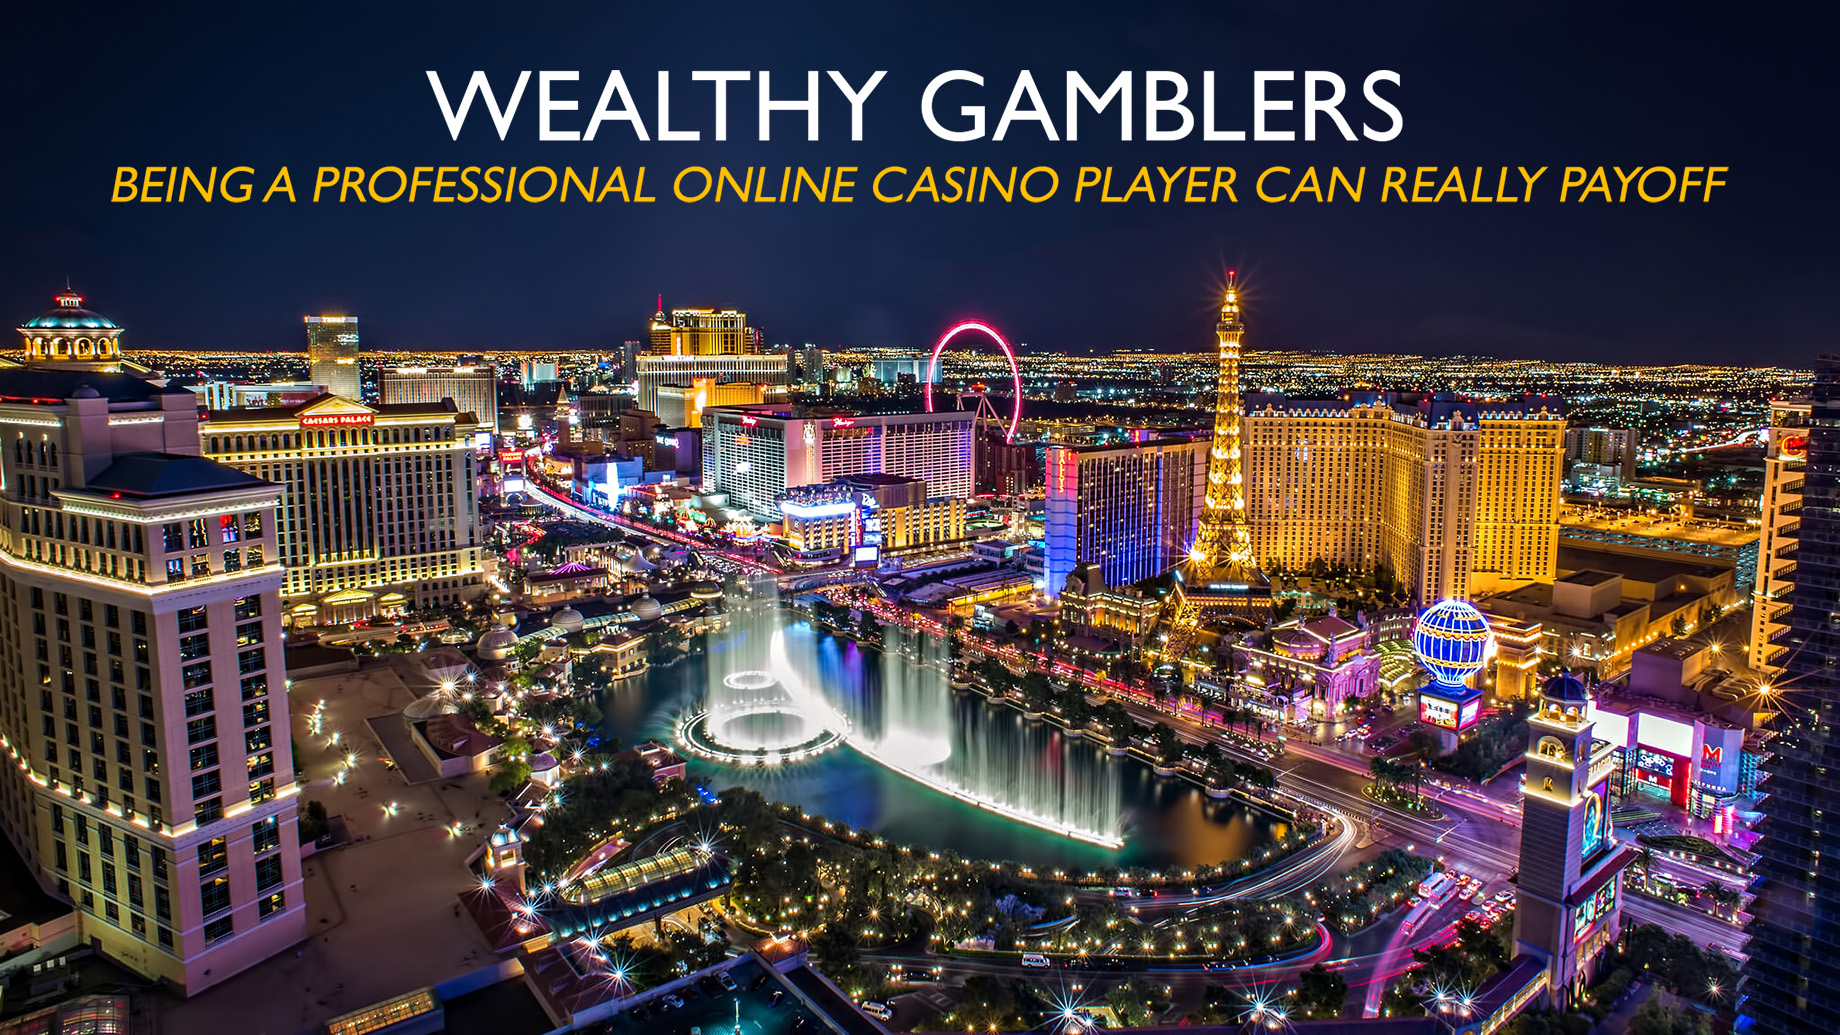 Wealthy Gamblers - Being a Professional Online Casino Player Can Really Payoff